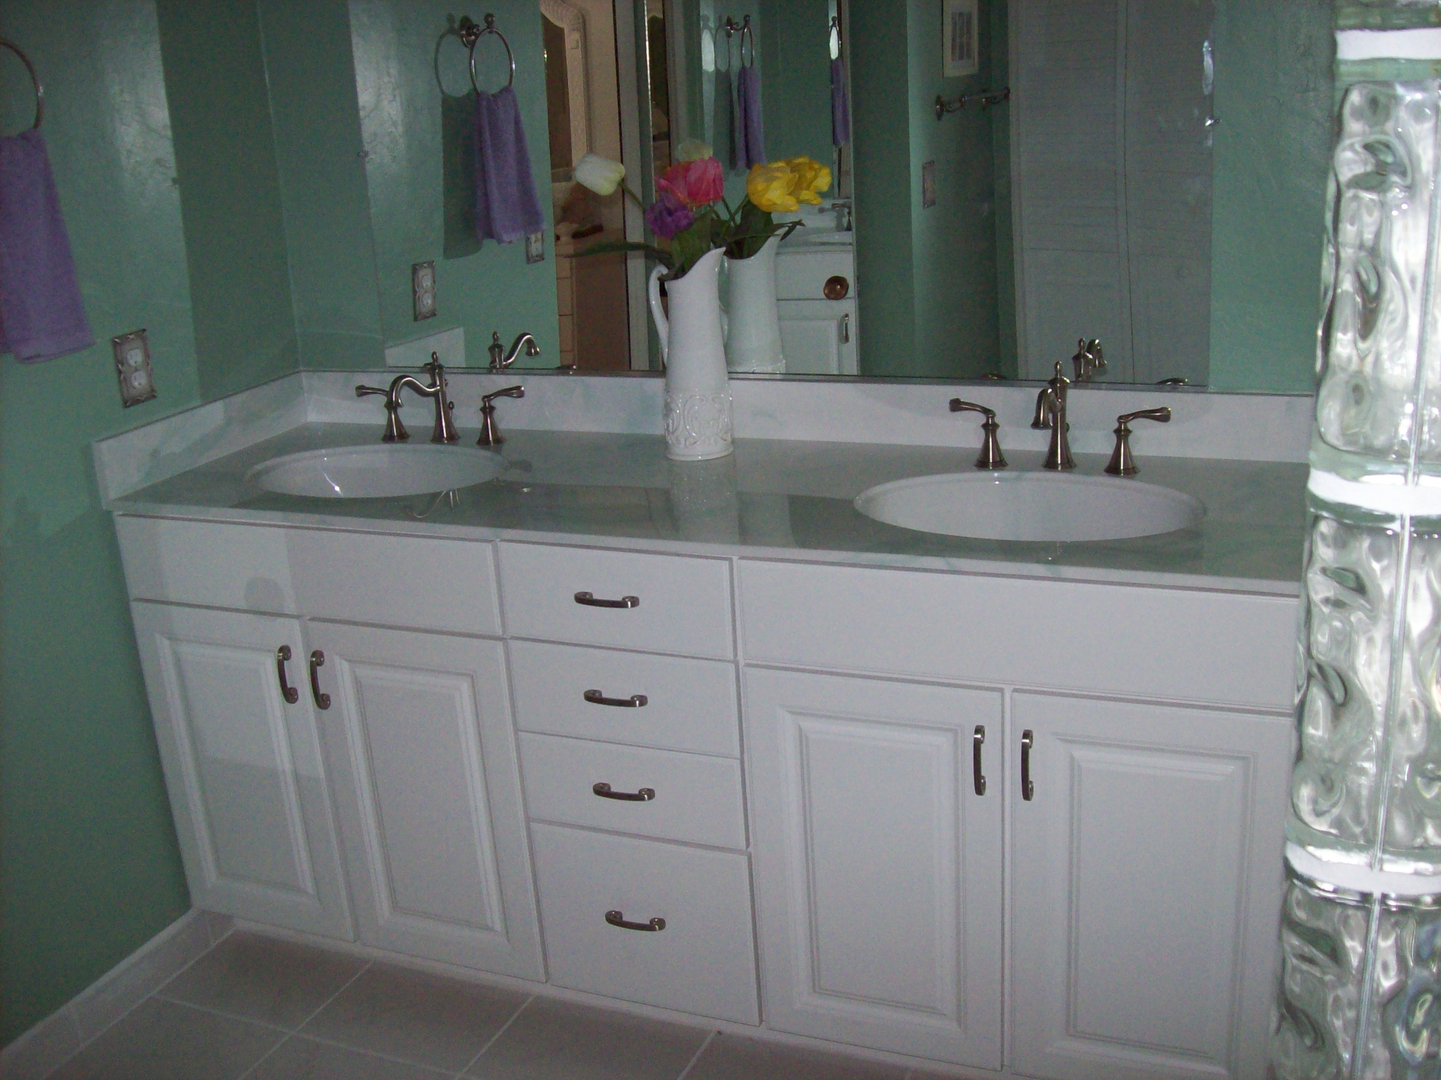 Bathroom Remodeling Tucson bathroom remodeling, kitchen remodeling - steve wright - tucson, az